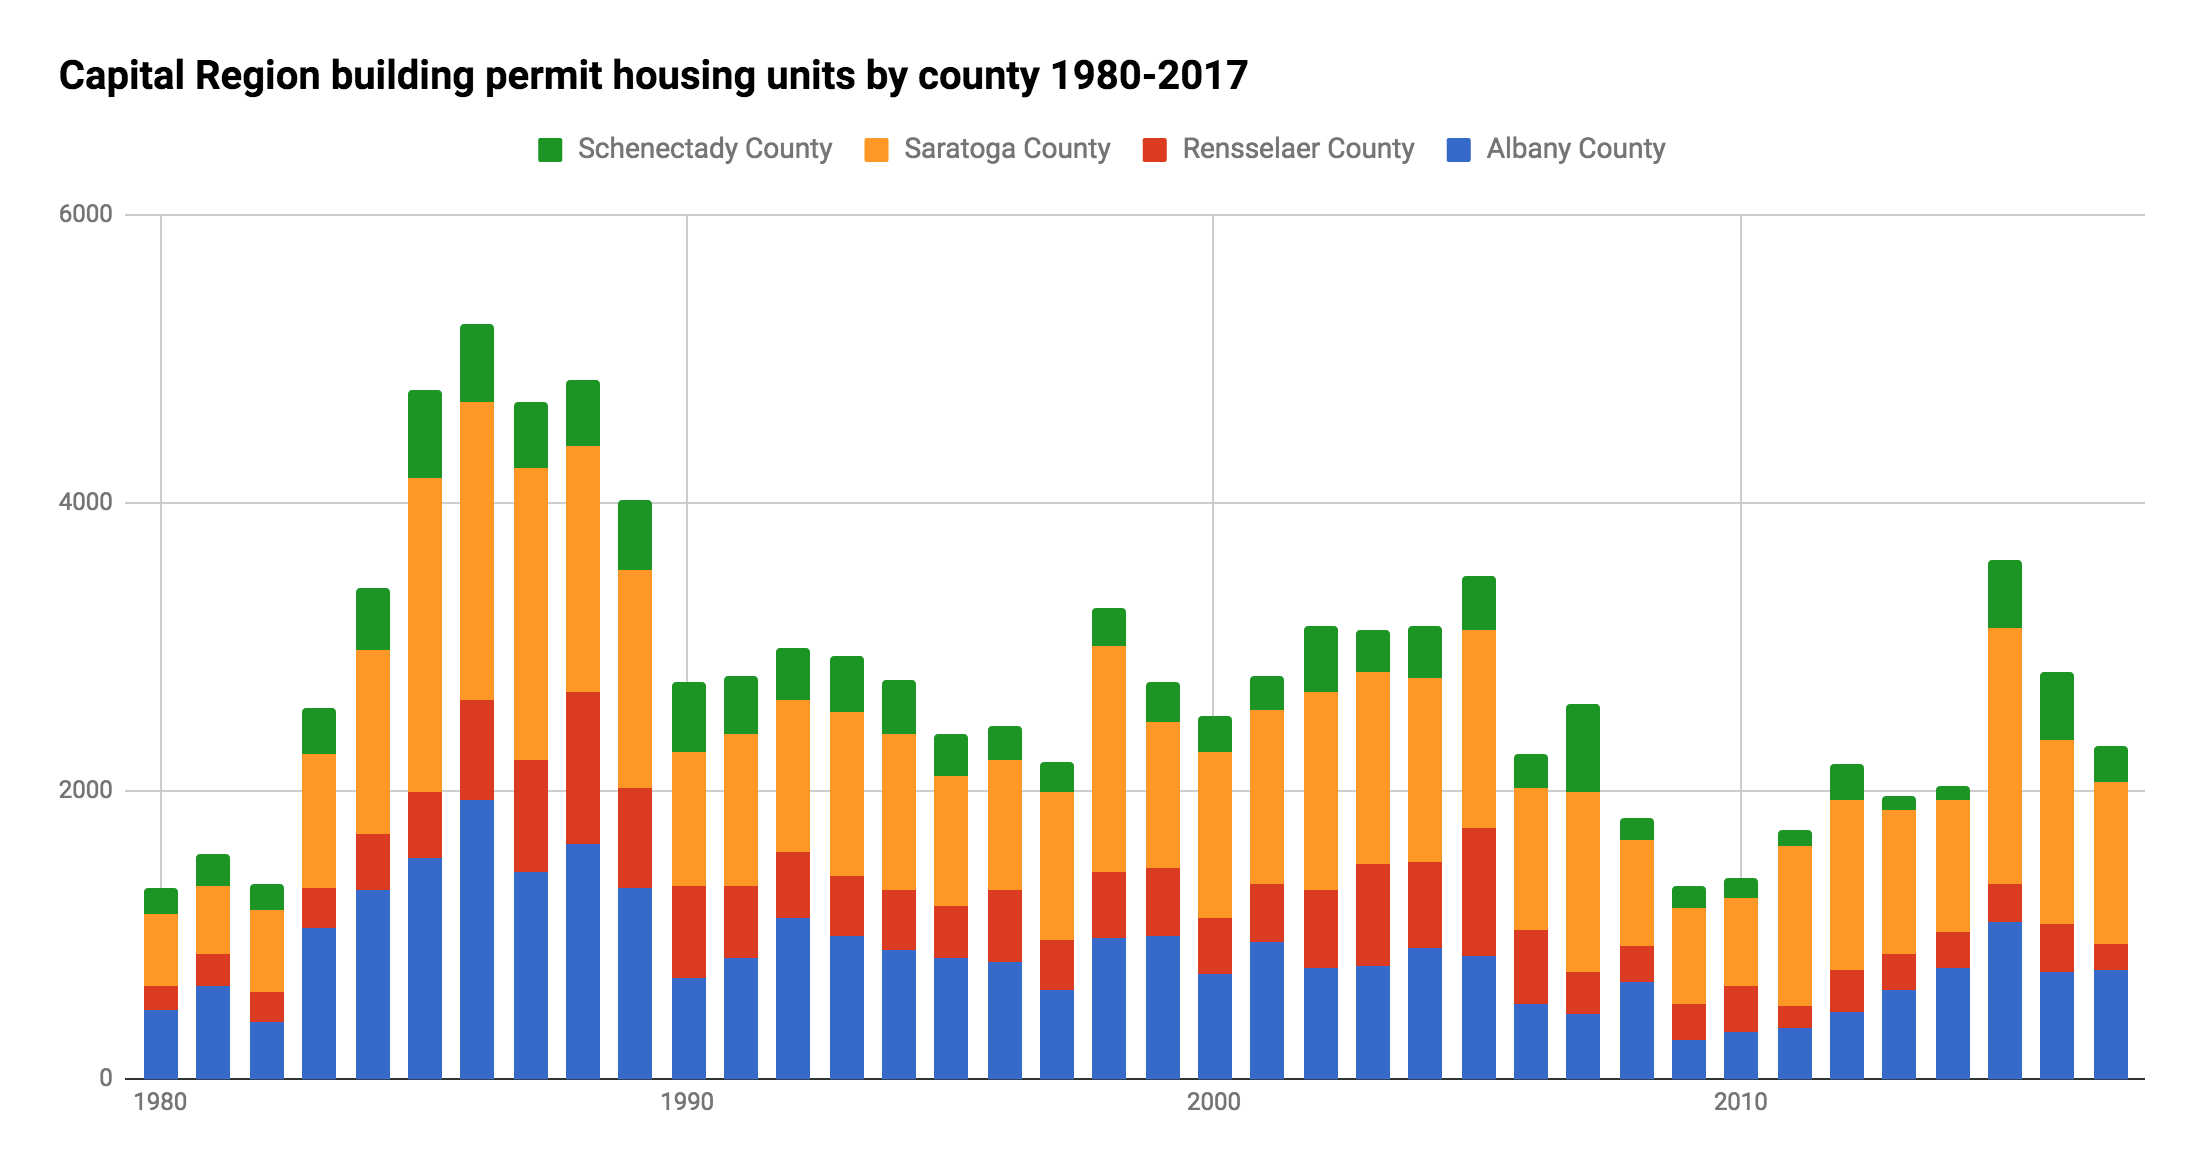 Capital_Region_counties_building_permit_residential_units_1980-2017.png